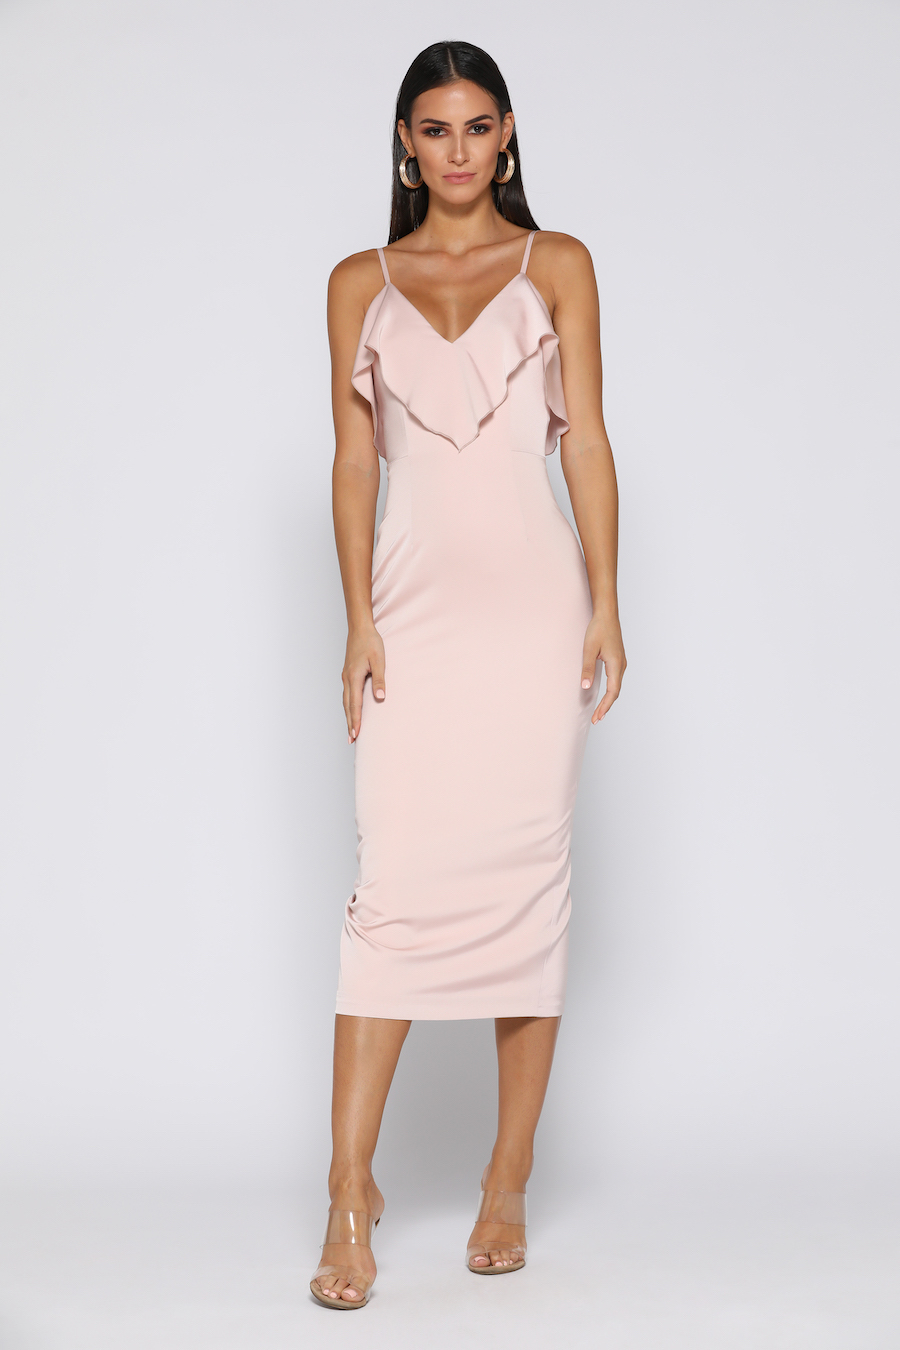 Soft Satin Spaghetti Strap dress with frill detail